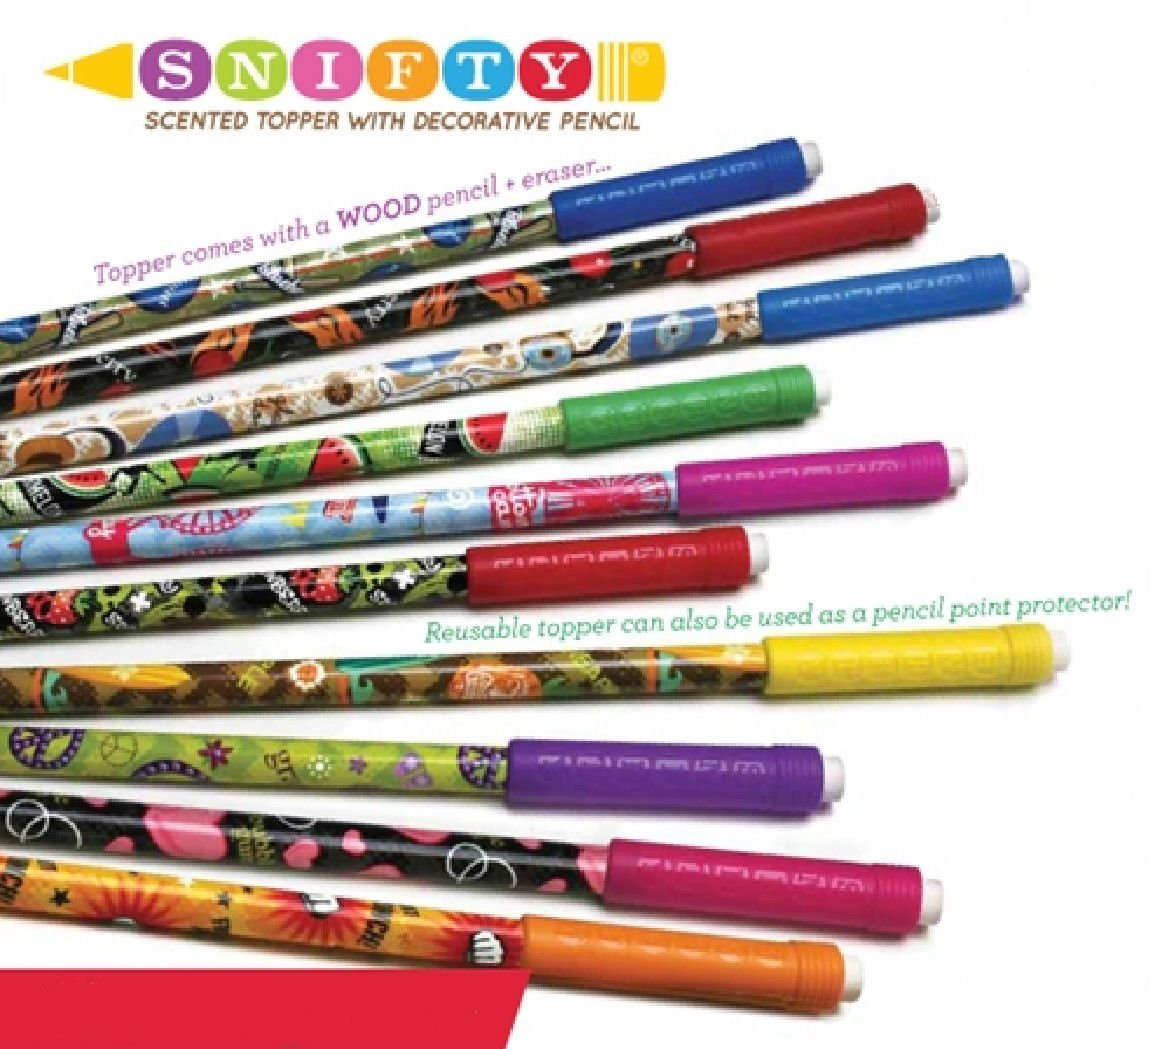 1 x Glazed Donut Scented Pencil - Supplied in a plastic tube for freshness, By Snifty Ship from US